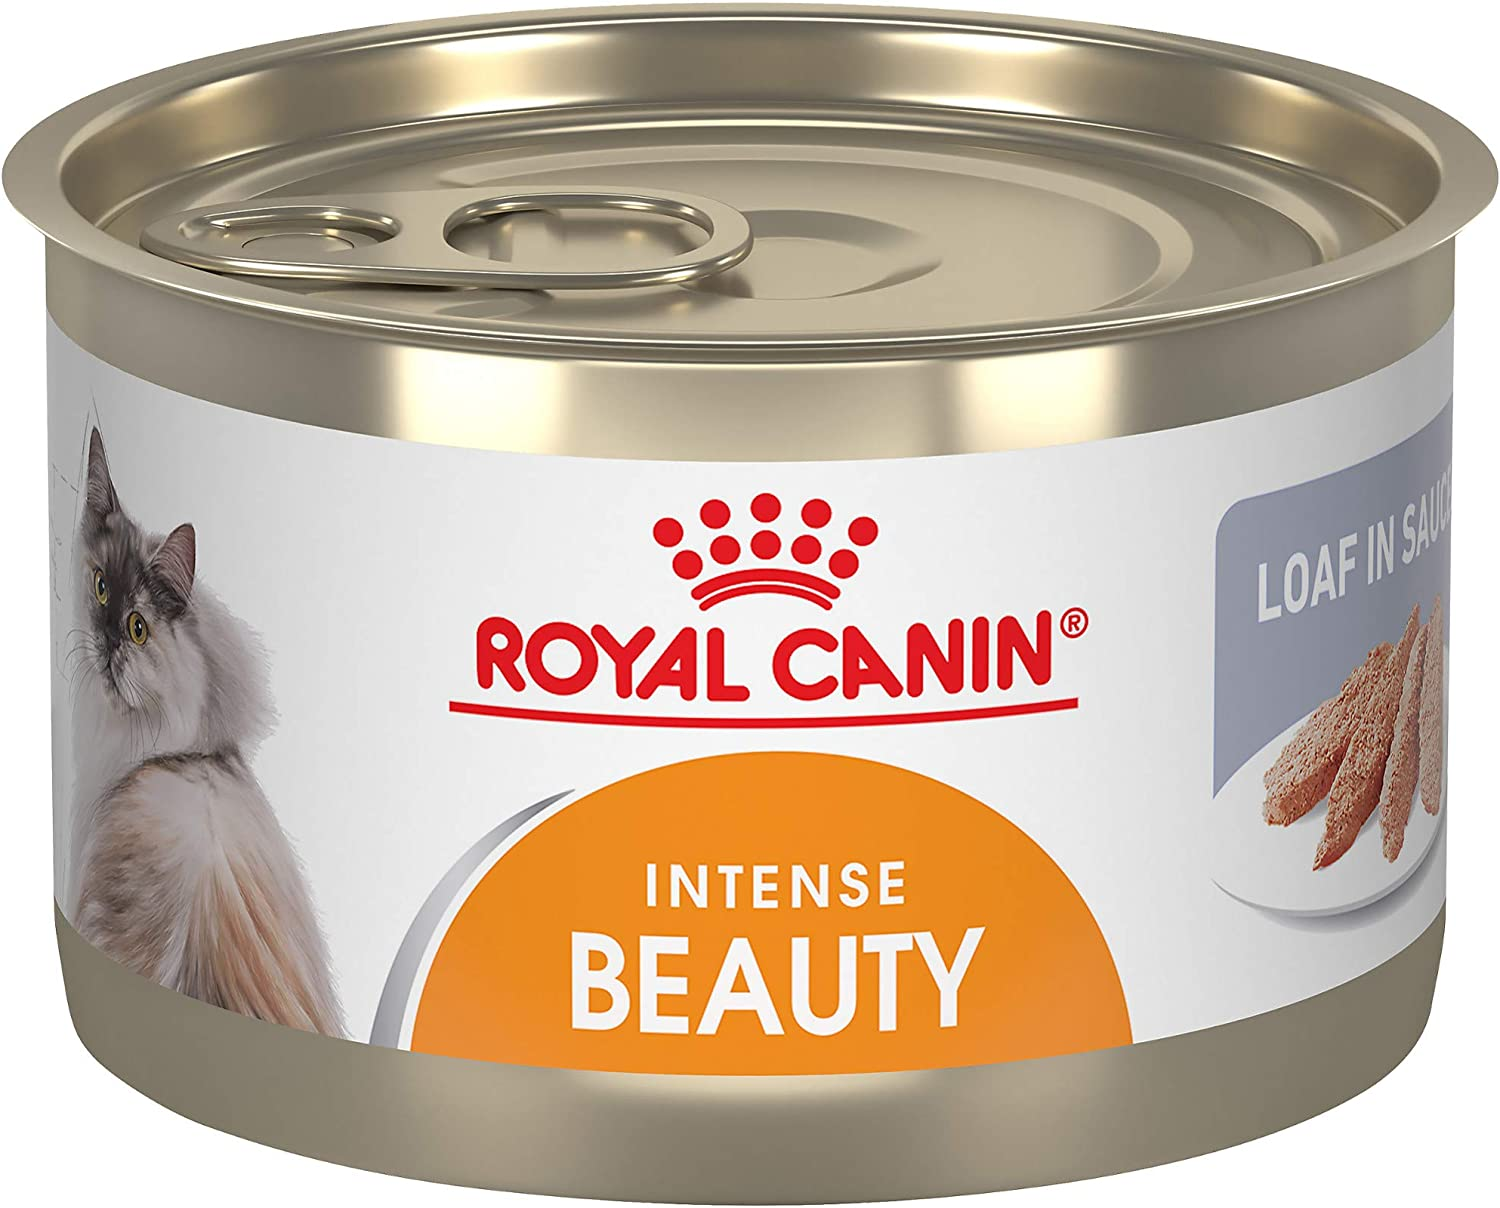 Royal Canin Feline Care Nutrition Intense Beauty Loaf in Sauce Canned Cat Food, 5.1 oz Can (Pack of 24)